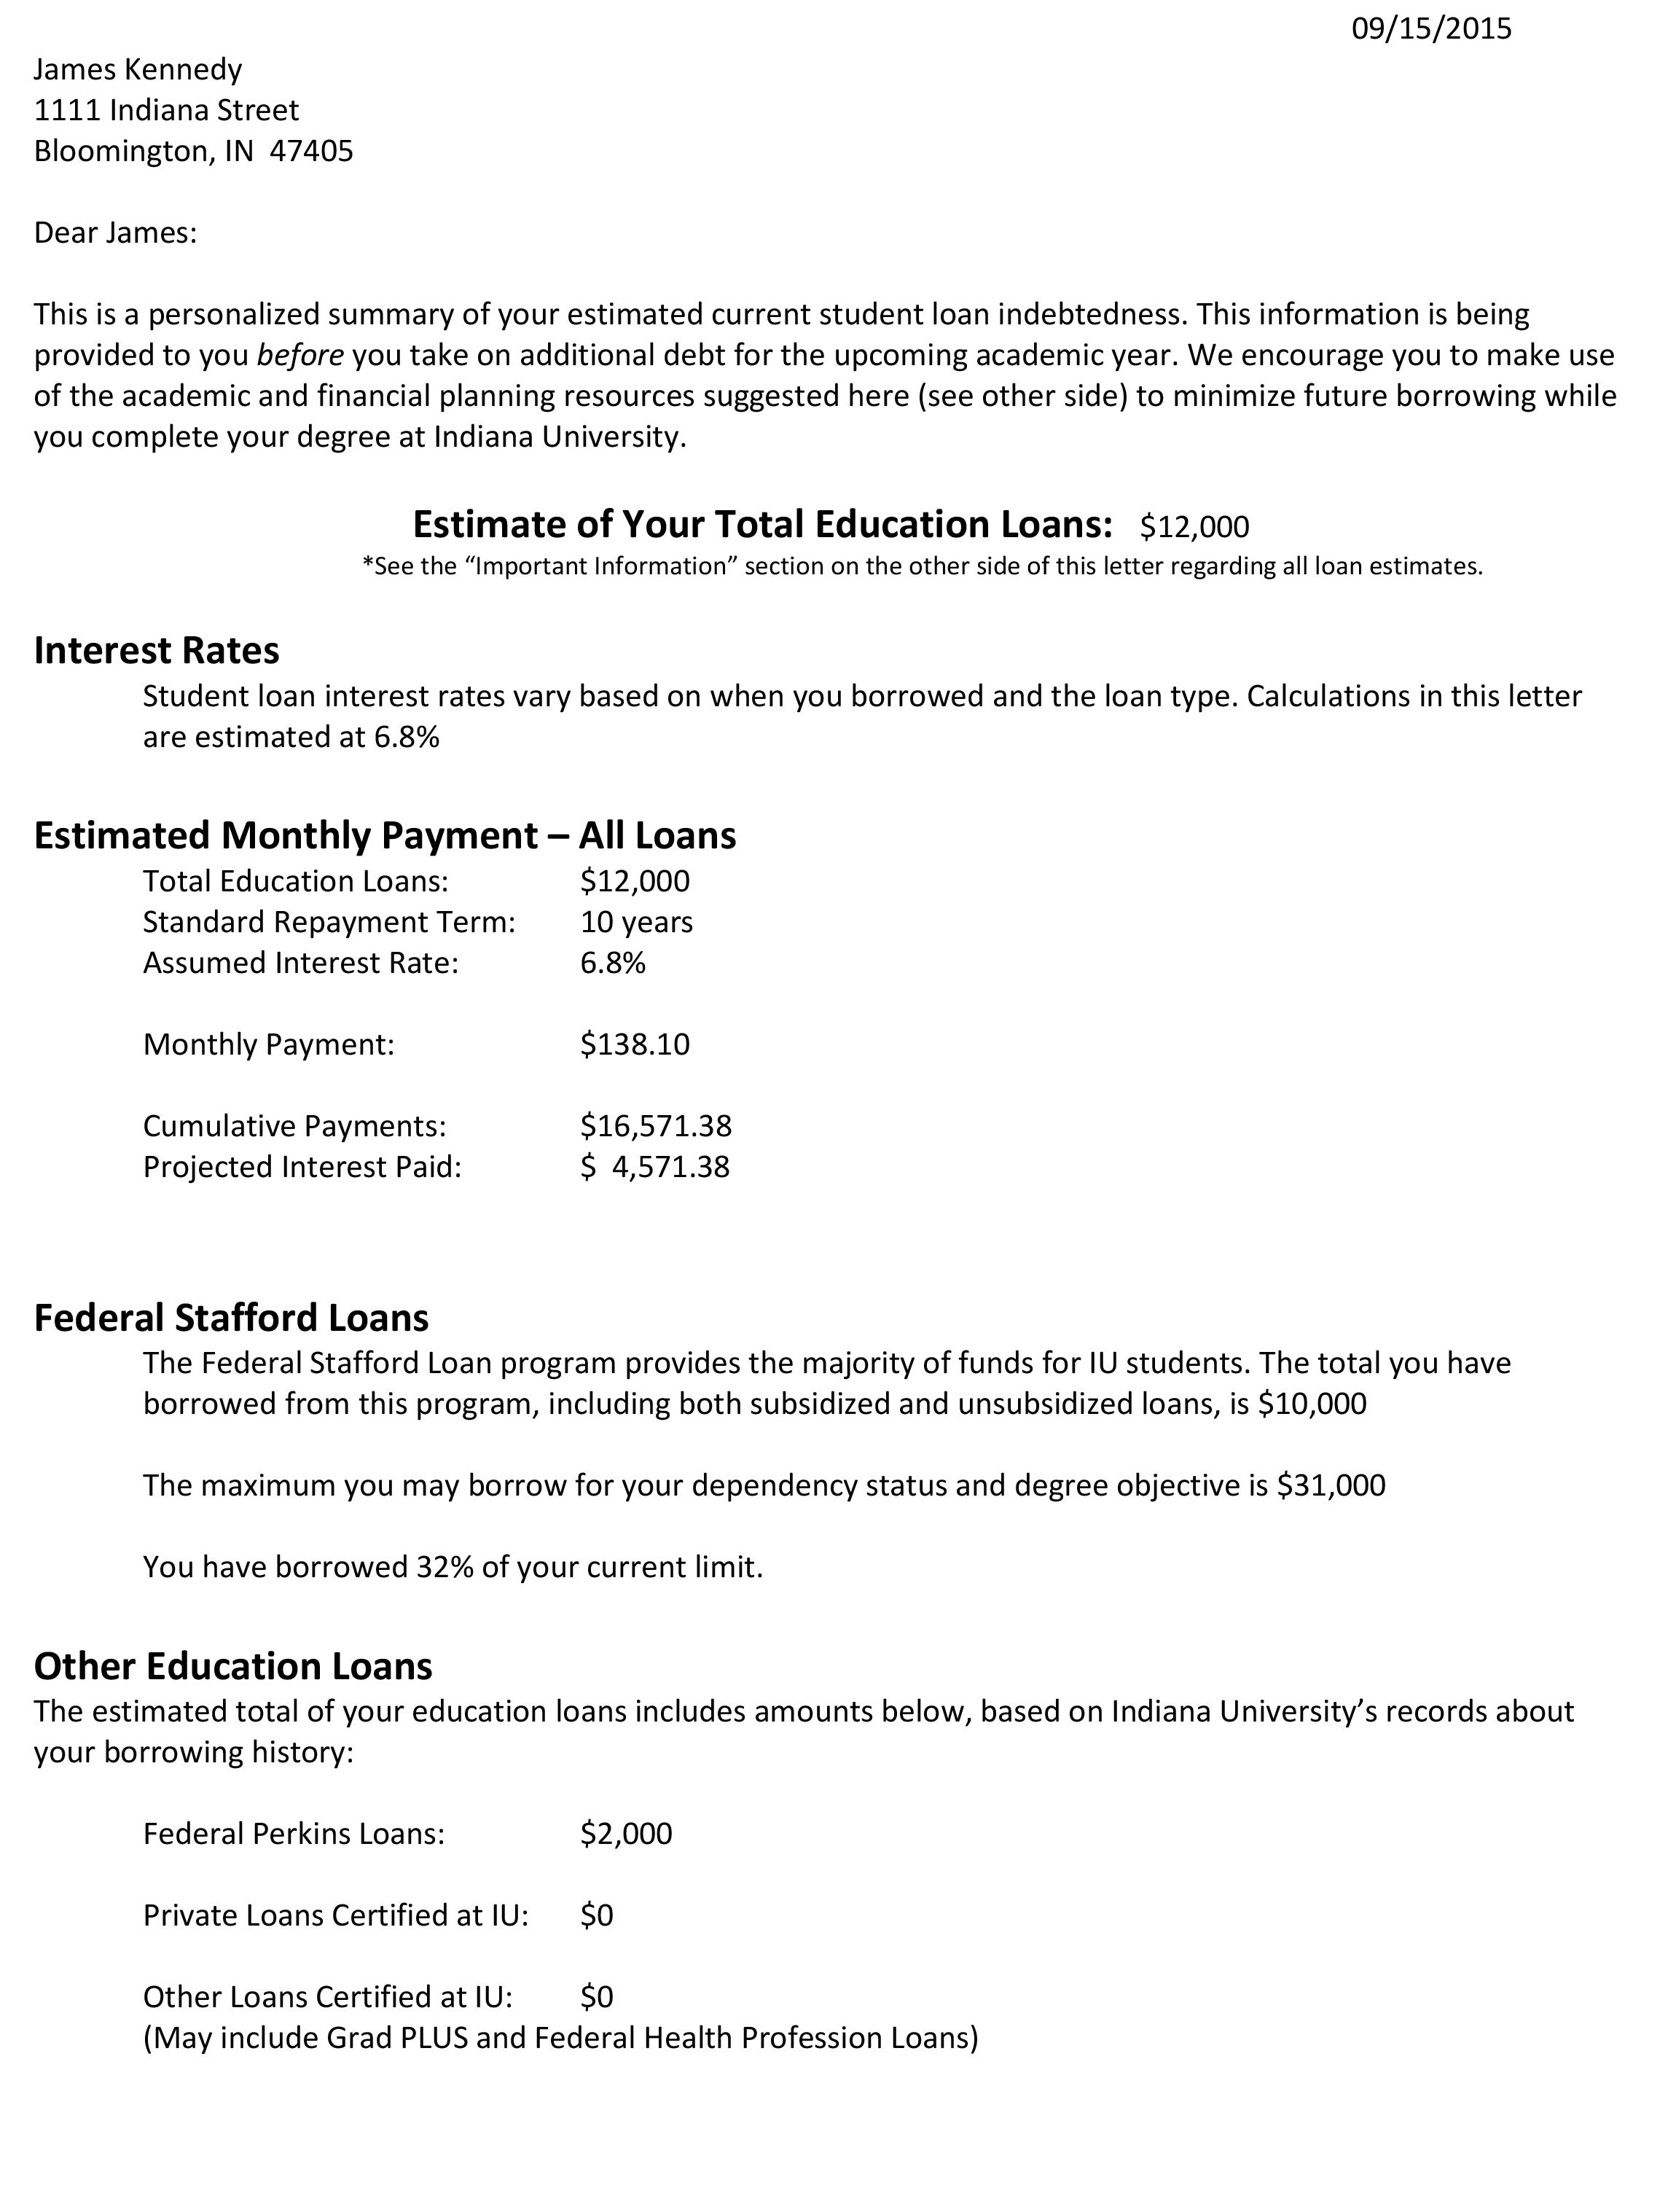 Loan-Debt-Letter-example-1